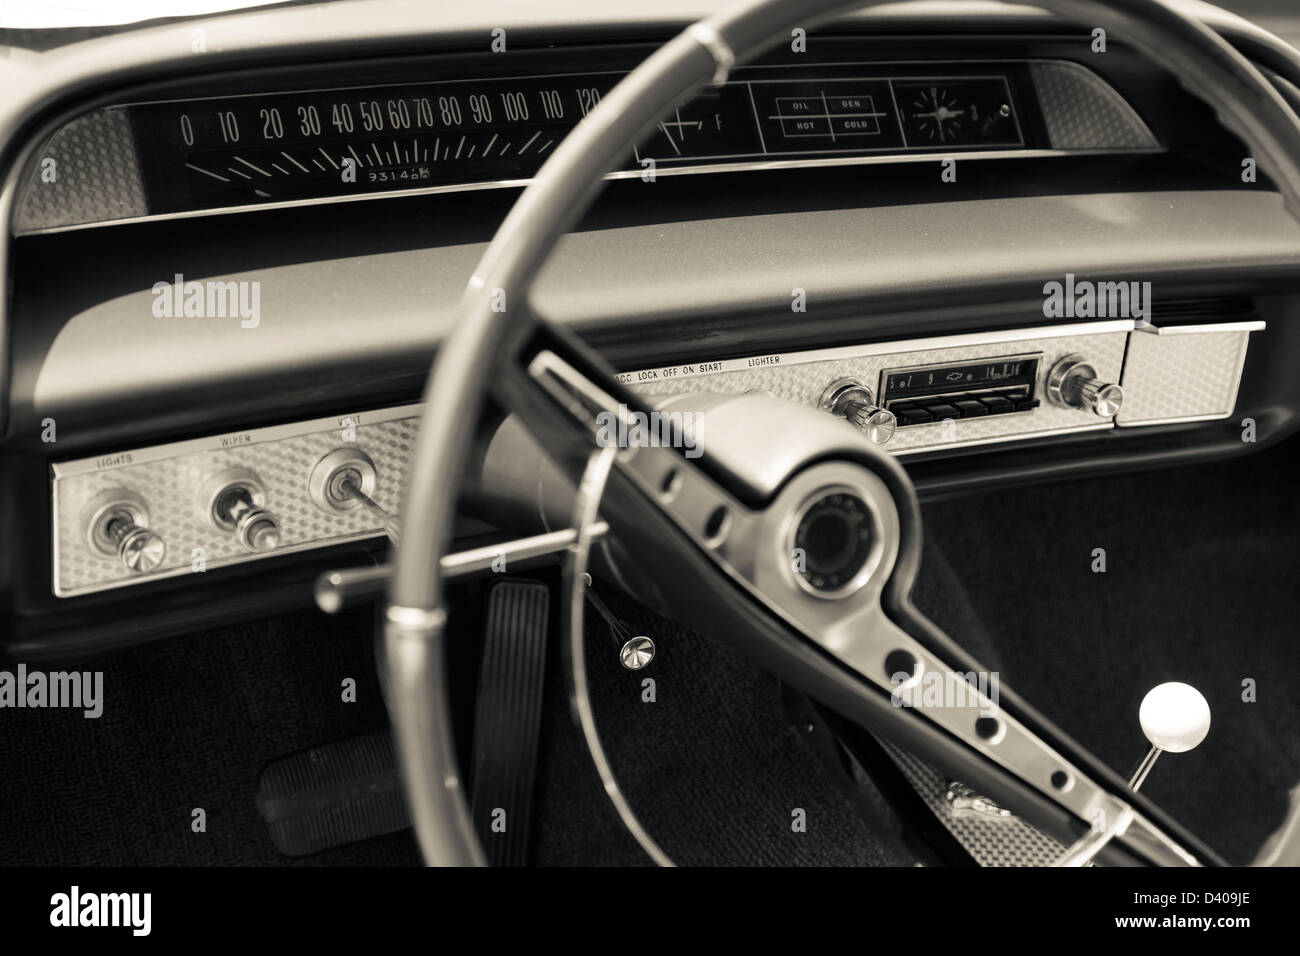 Old Car Radio Stock Photos Images Alamy Audio Dashboard Image